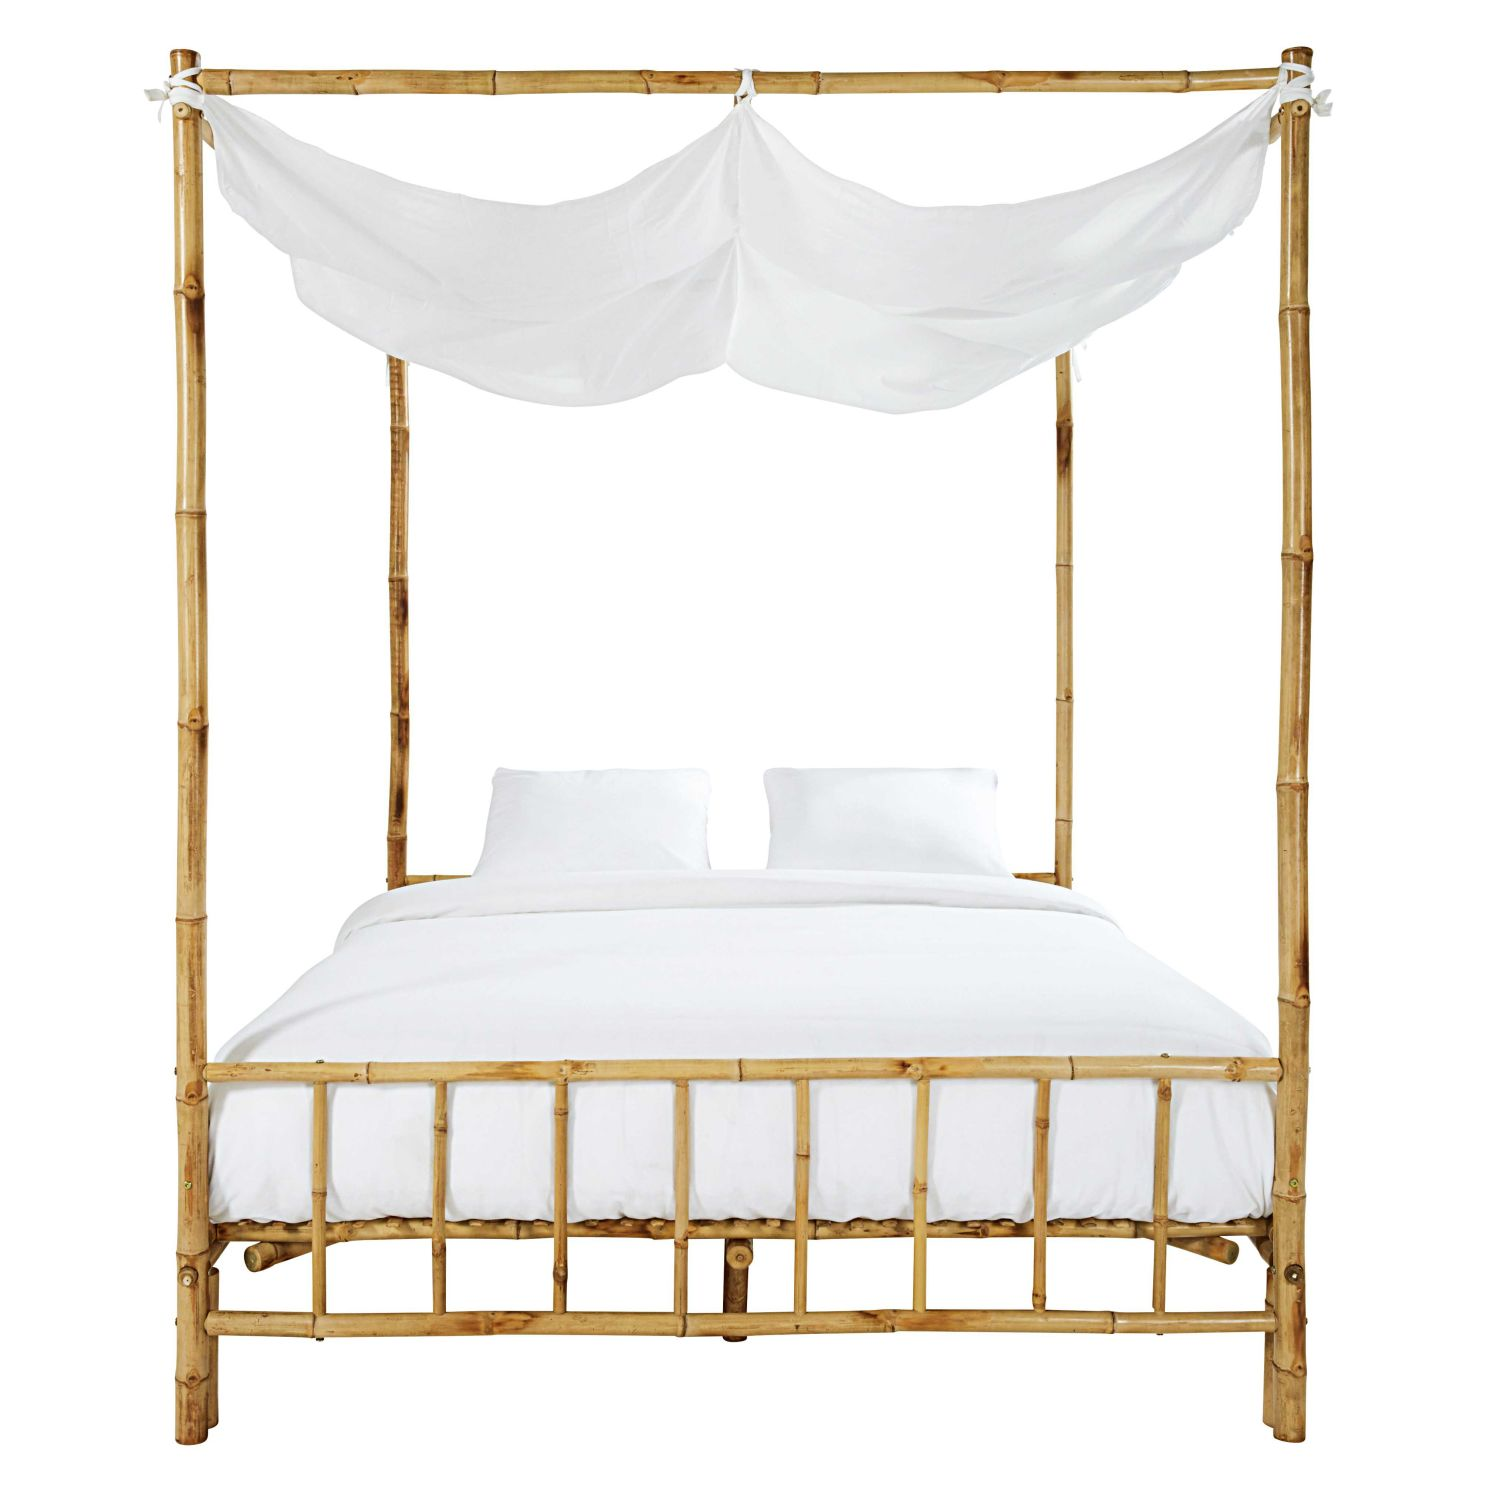 lit baldaquin 160x200 en bambou et tissu blanc maisons du monde. Black Bedroom Furniture Sets. Home Design Ideas